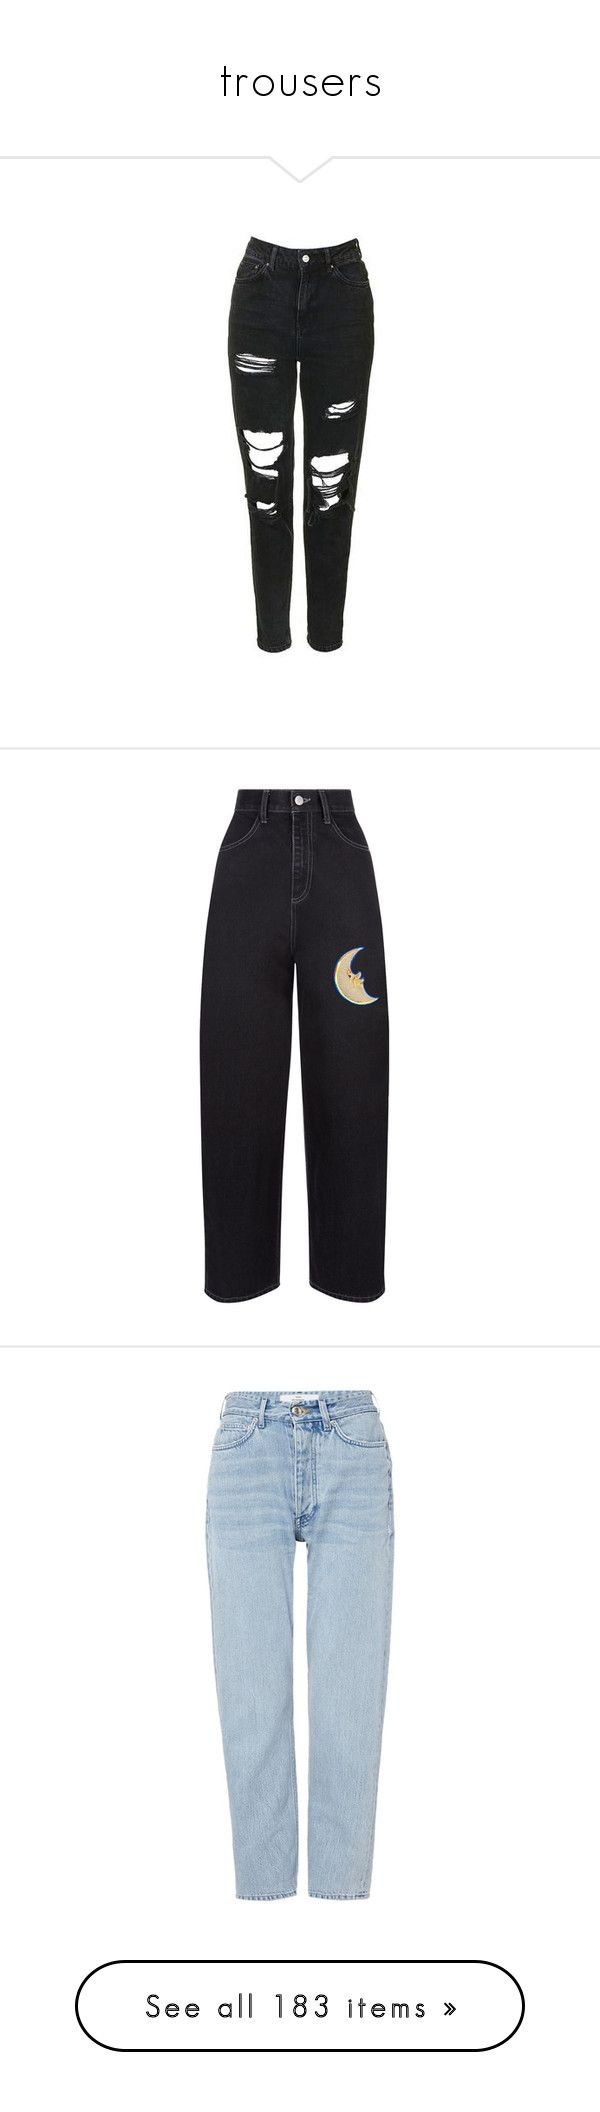 """""""trousers"""" by hetasdfghjkl ❤ liked on Polyvore featuring jeans, pants, bottoms, topshop, washed black, high rise jeans, high-waisted jeans, high waisted distressed jeans, ripped skinny jeans and cuffed skinny jeans"""